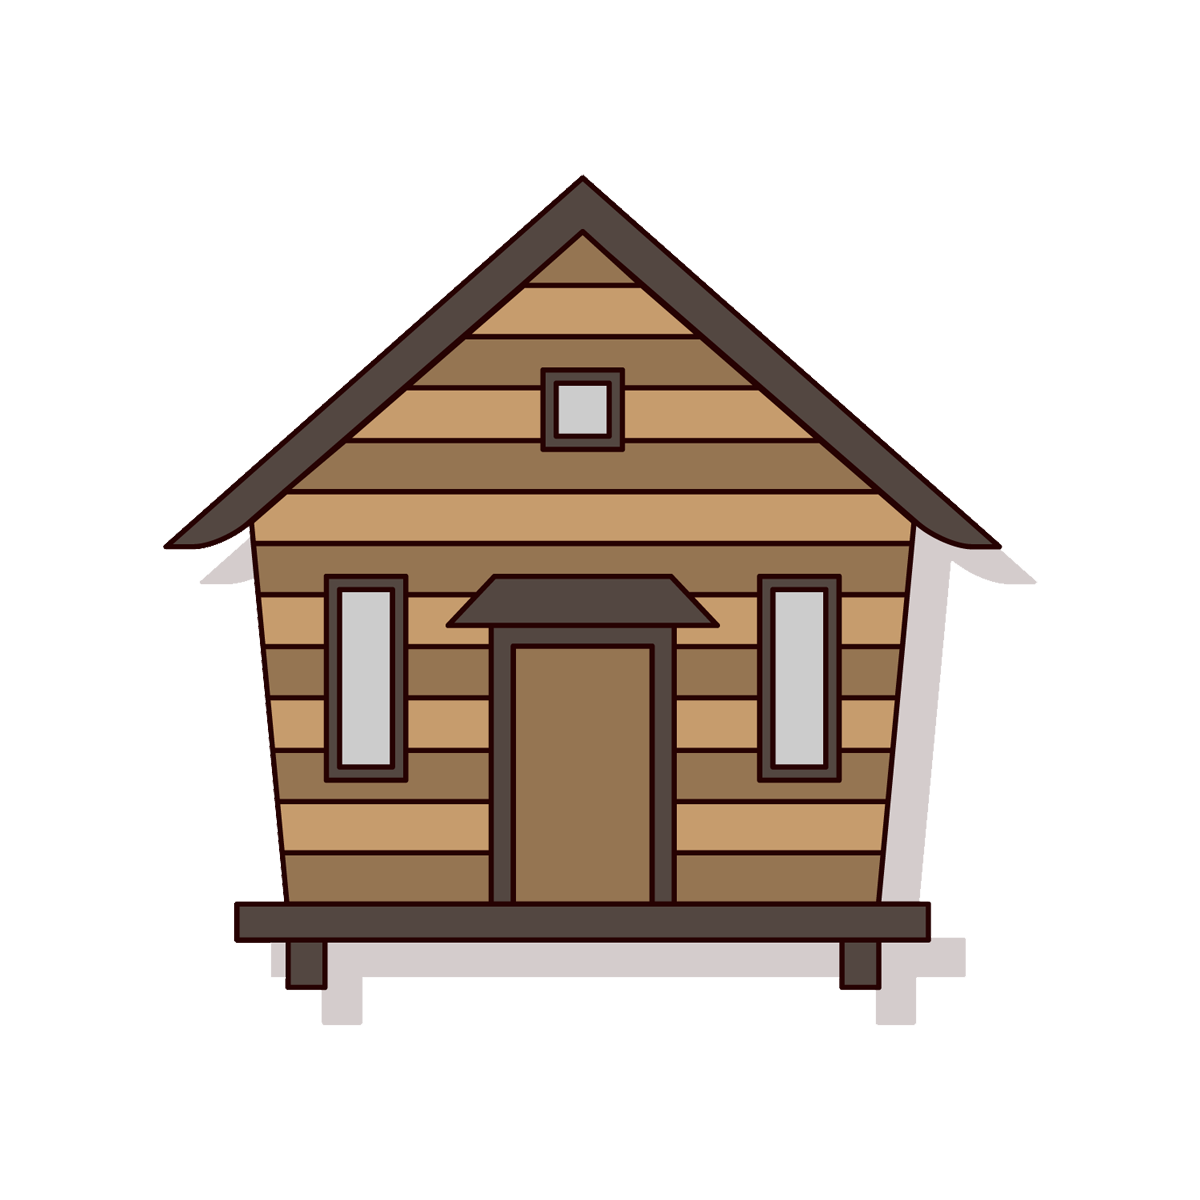 Cottage vector house simple. Home log cabin wooden